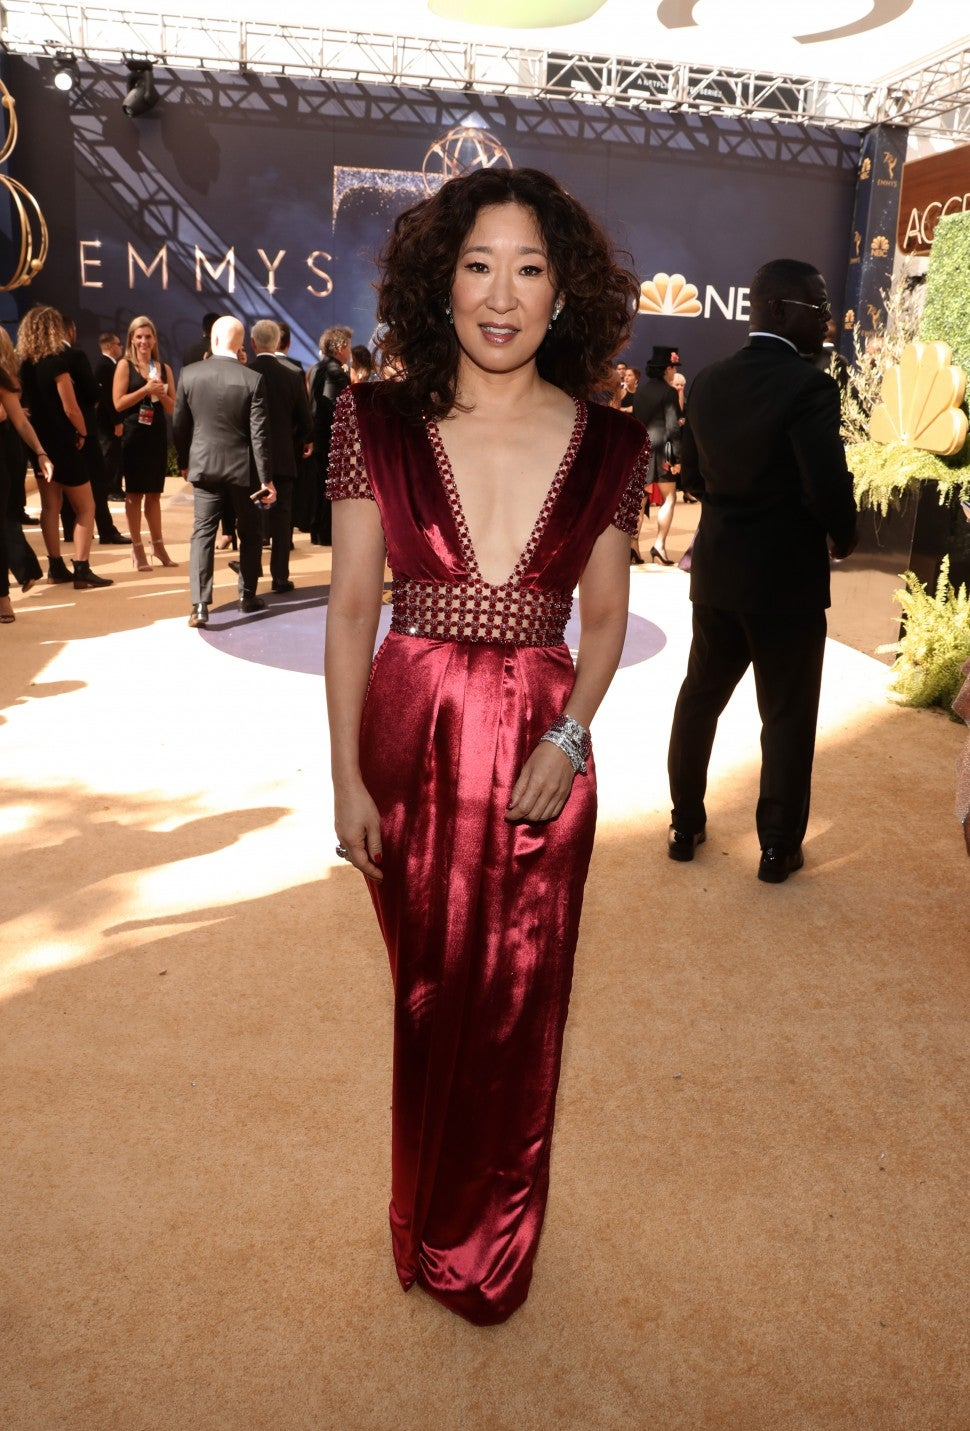 sandra_oh_gettyimages-1035110216.jpg